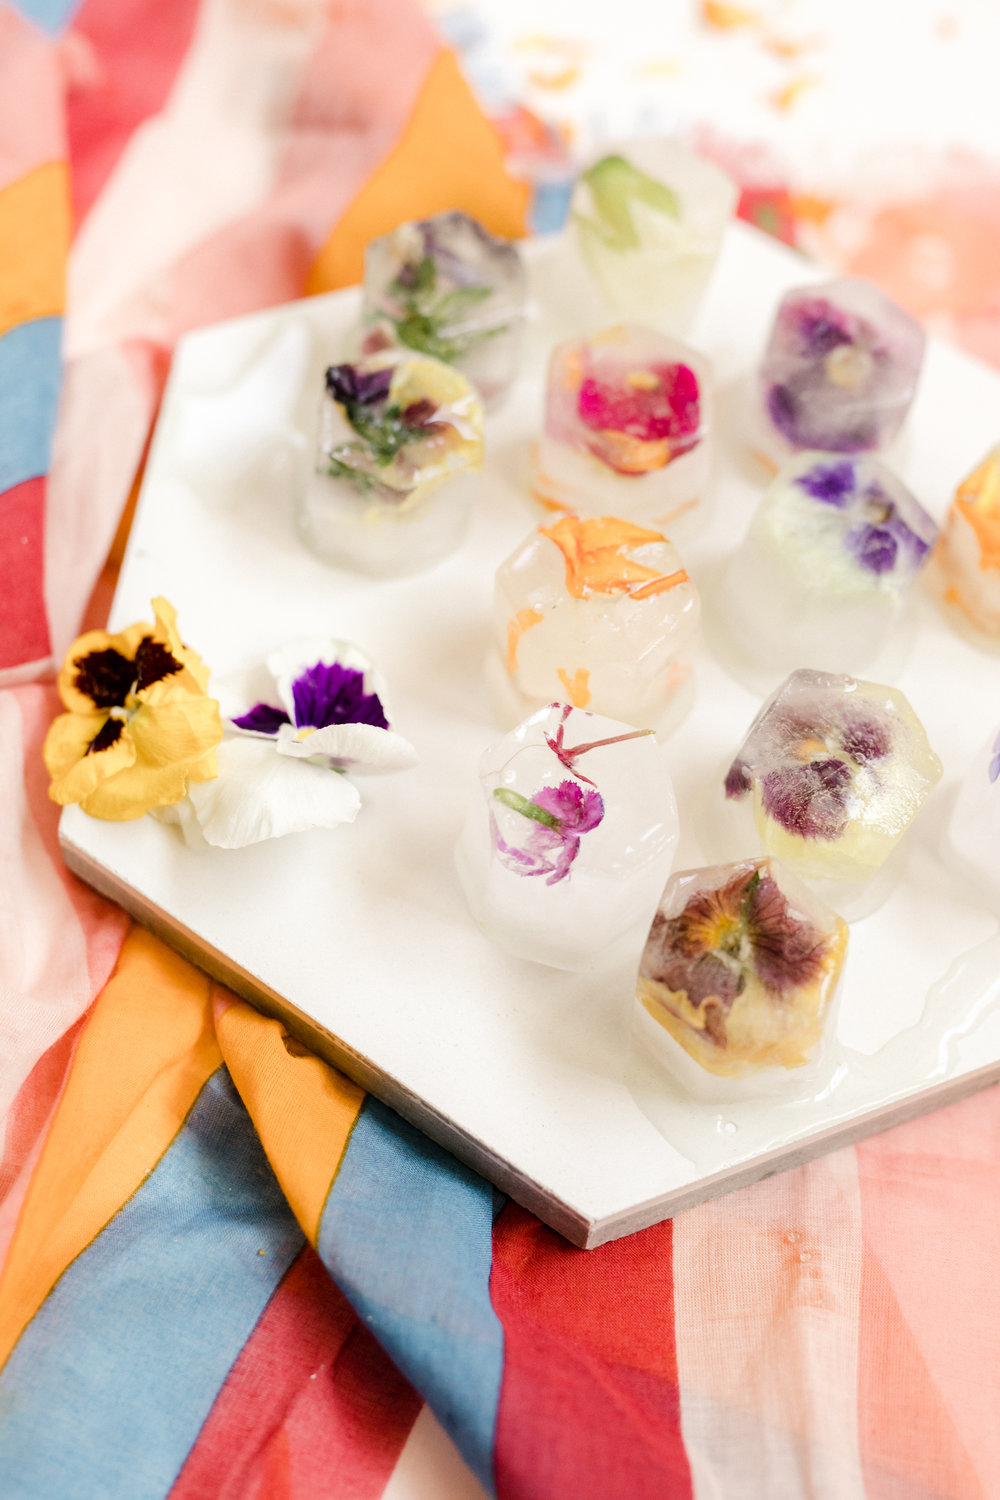 Floral Ice Cubes - The Wild Posy - Anna Delores.jpg